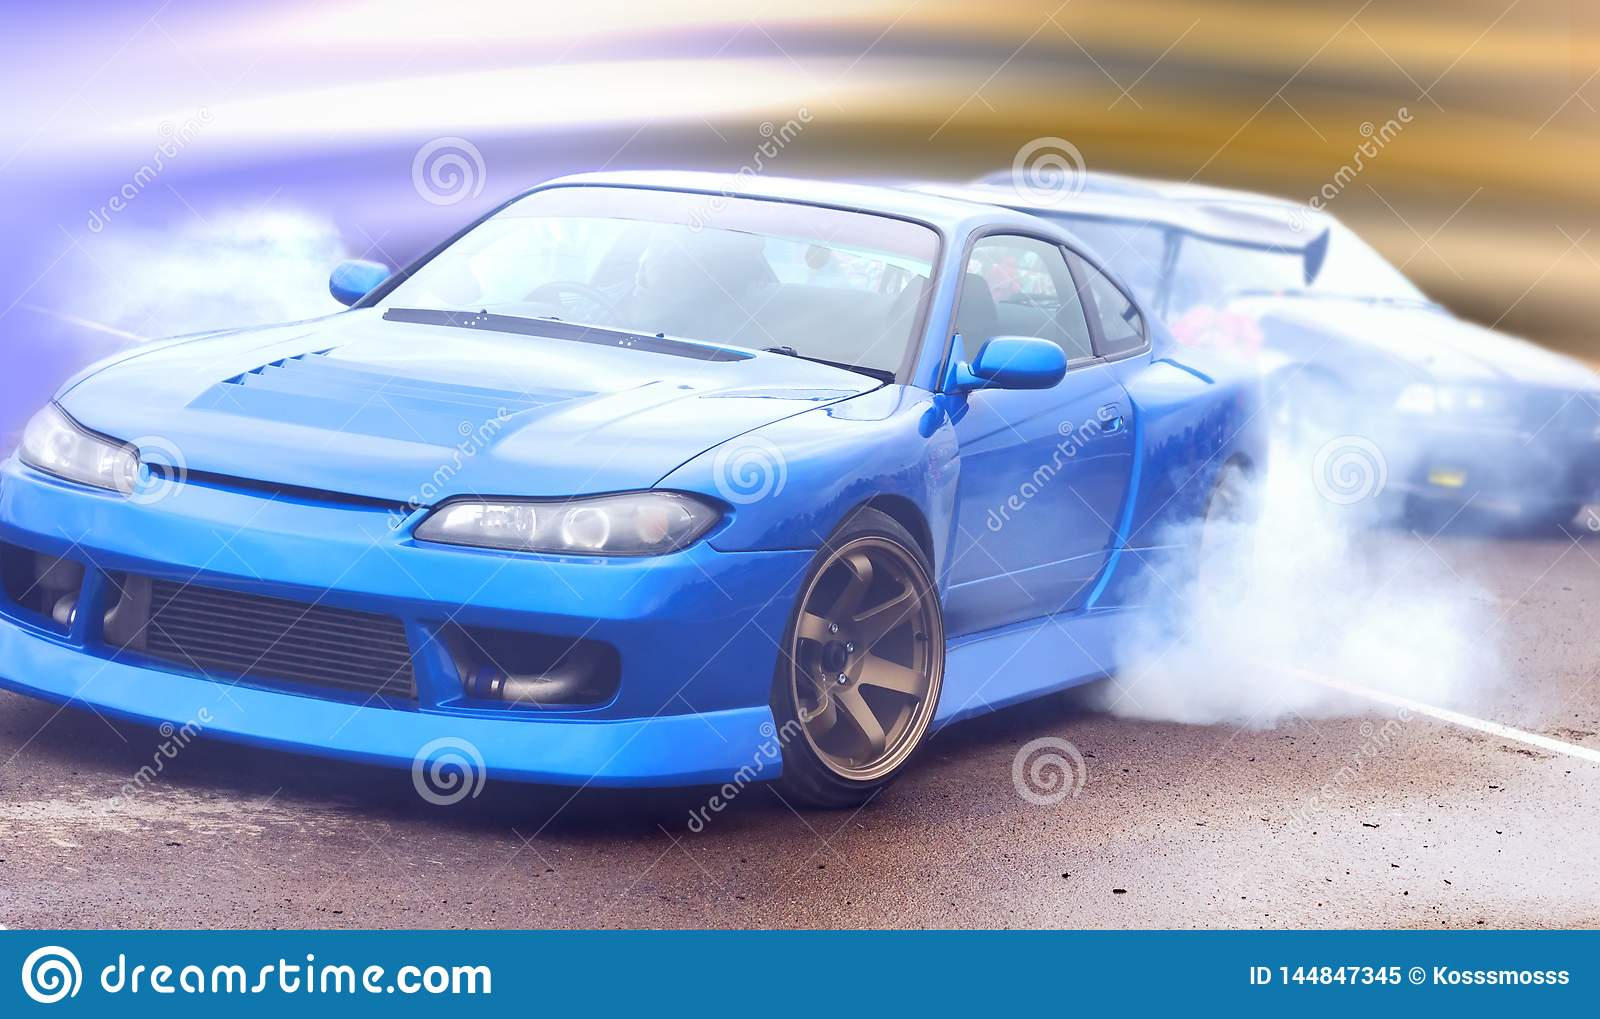 Modern vision of the photo drift racing car with the imposition of a unique effect.